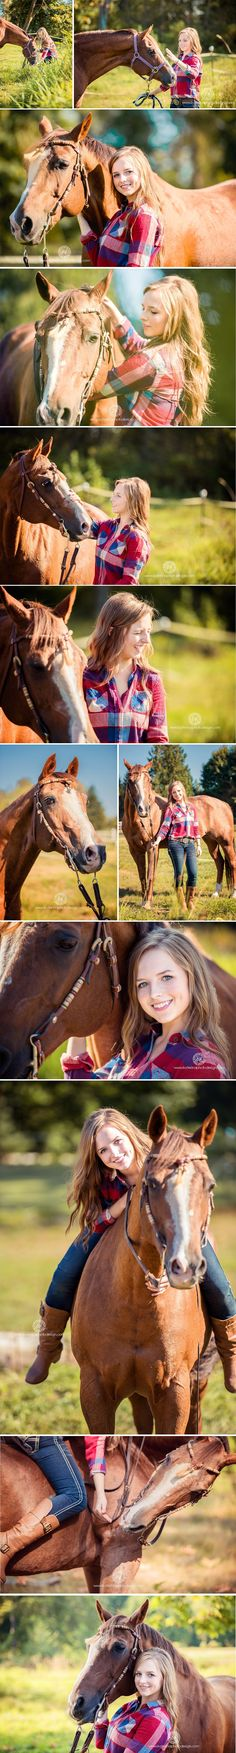 Cute pics for horse-loving girlies!!